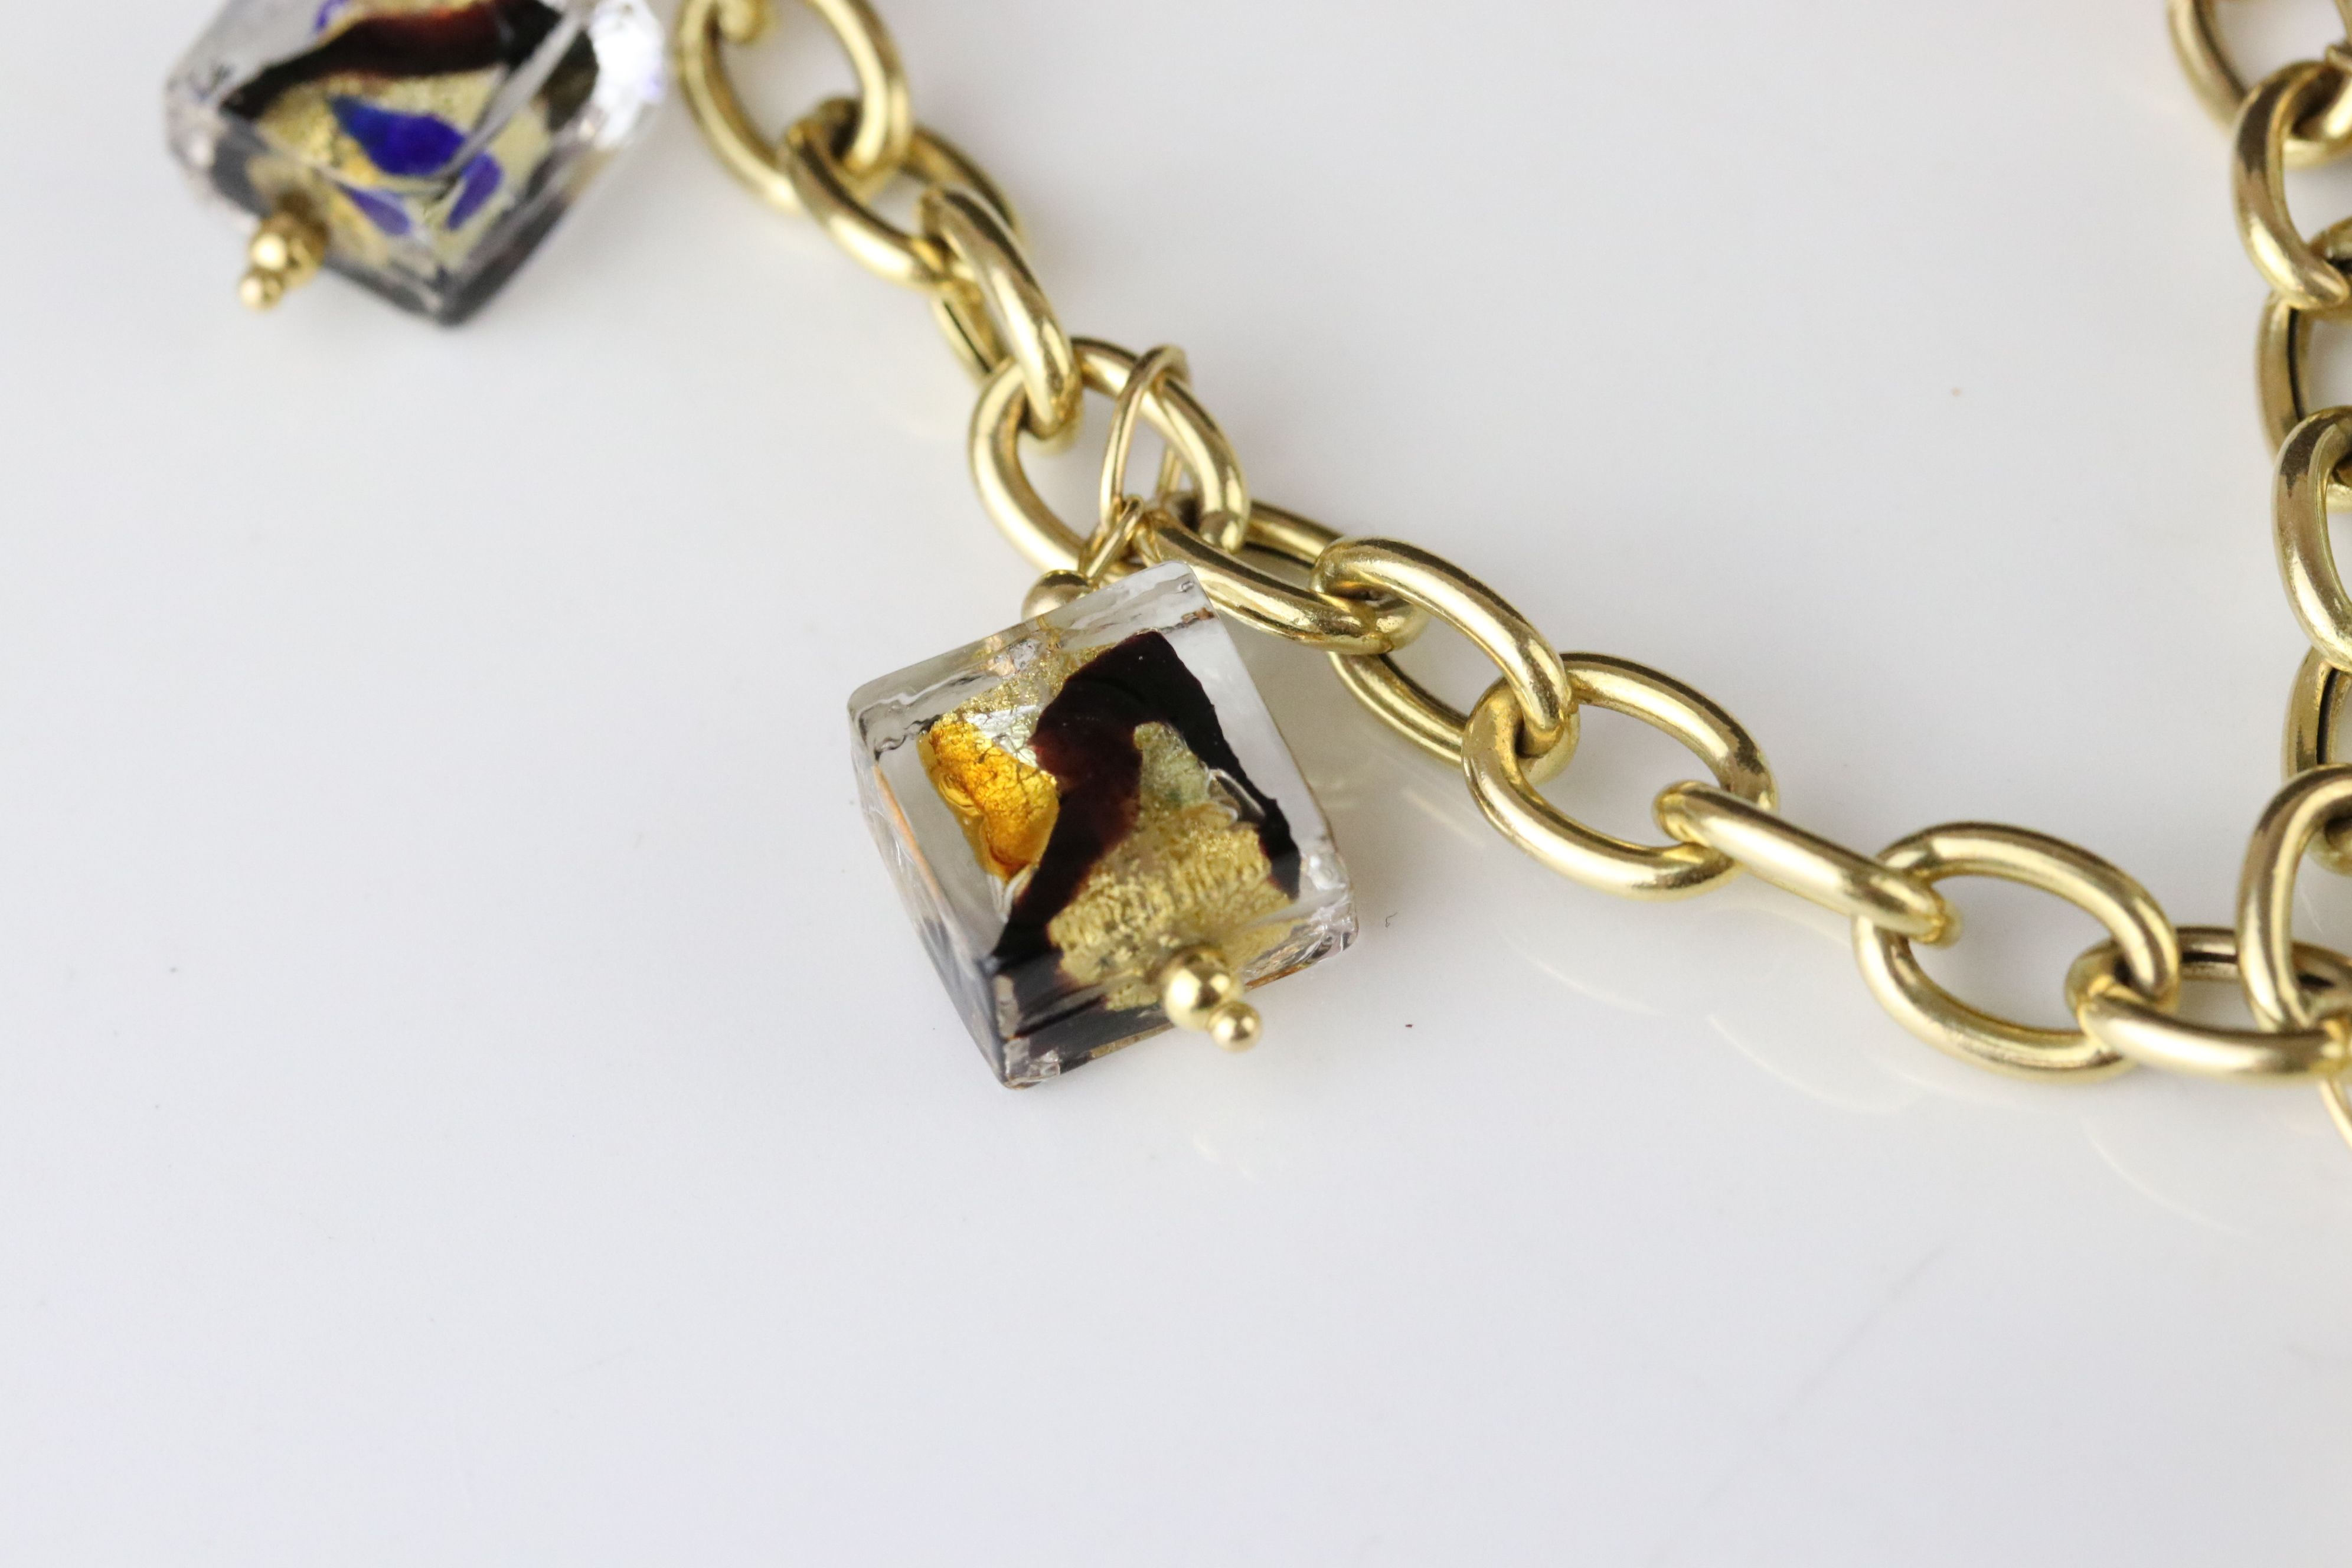 14ct yellow gold charm bracelet with five Murano style glass charms, lobster clasp, length approx - Image 2 of 5